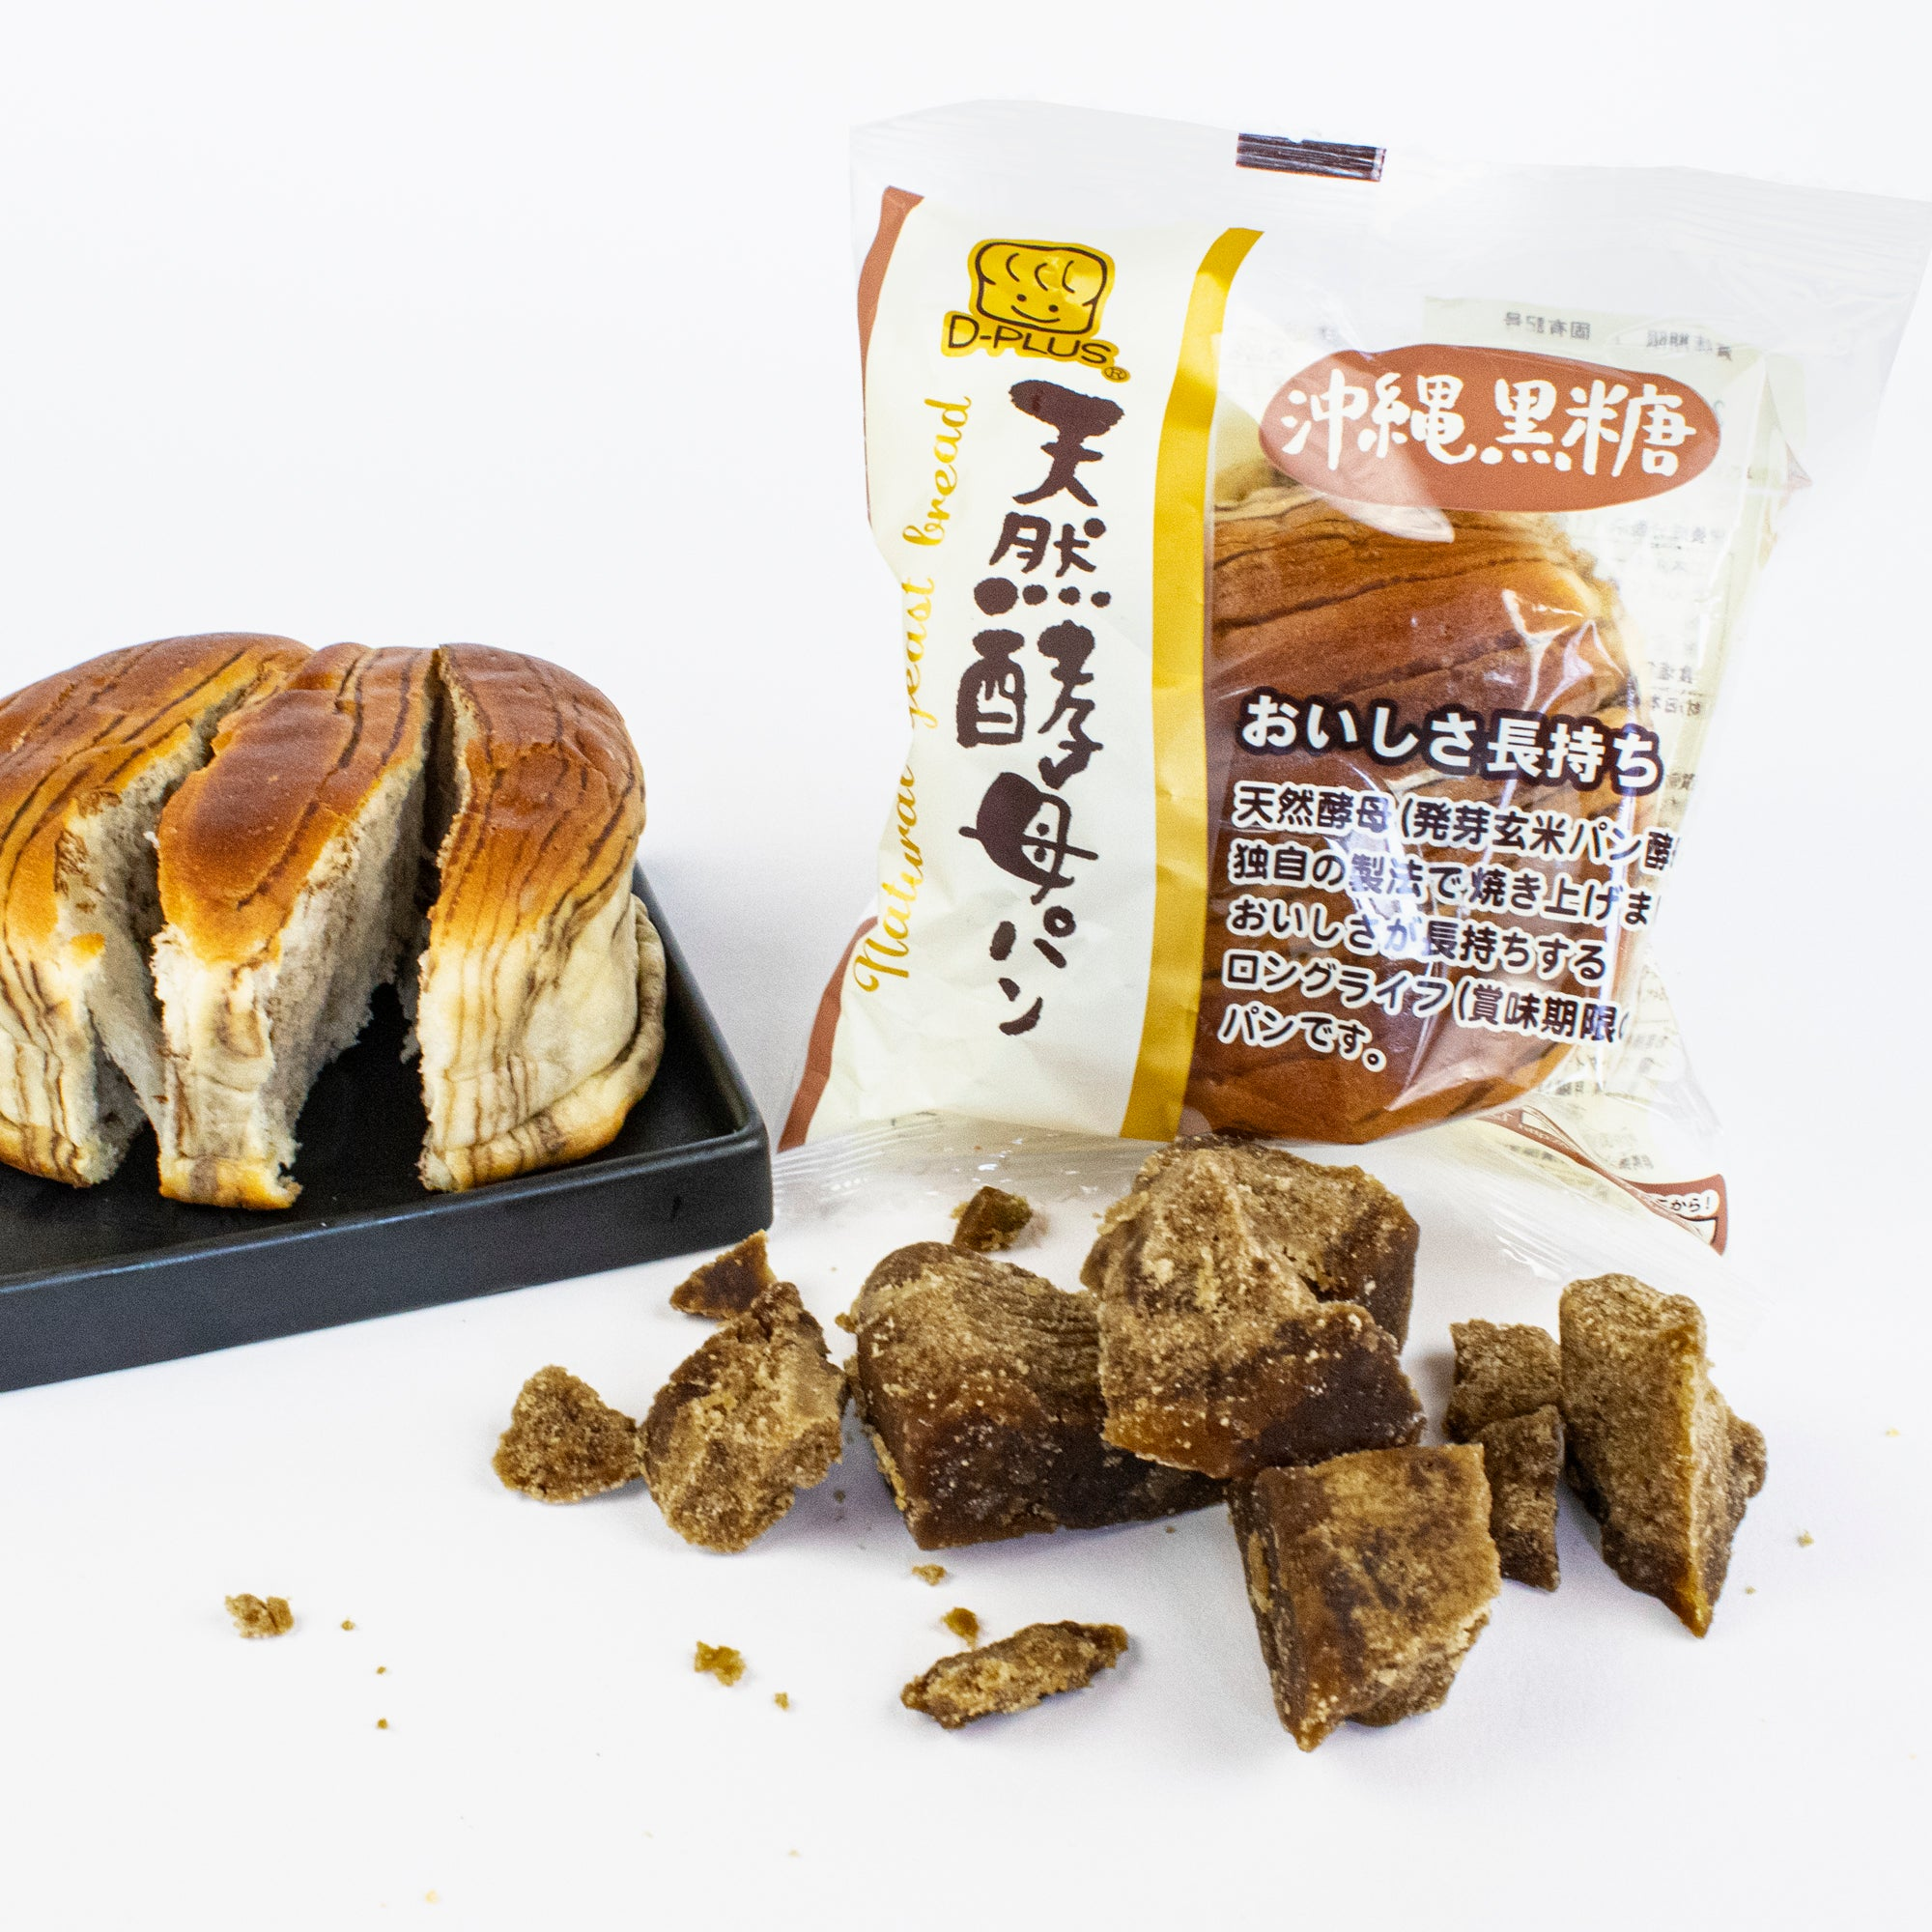 Natural Yeast Bread: Okinawa Brown Sugar